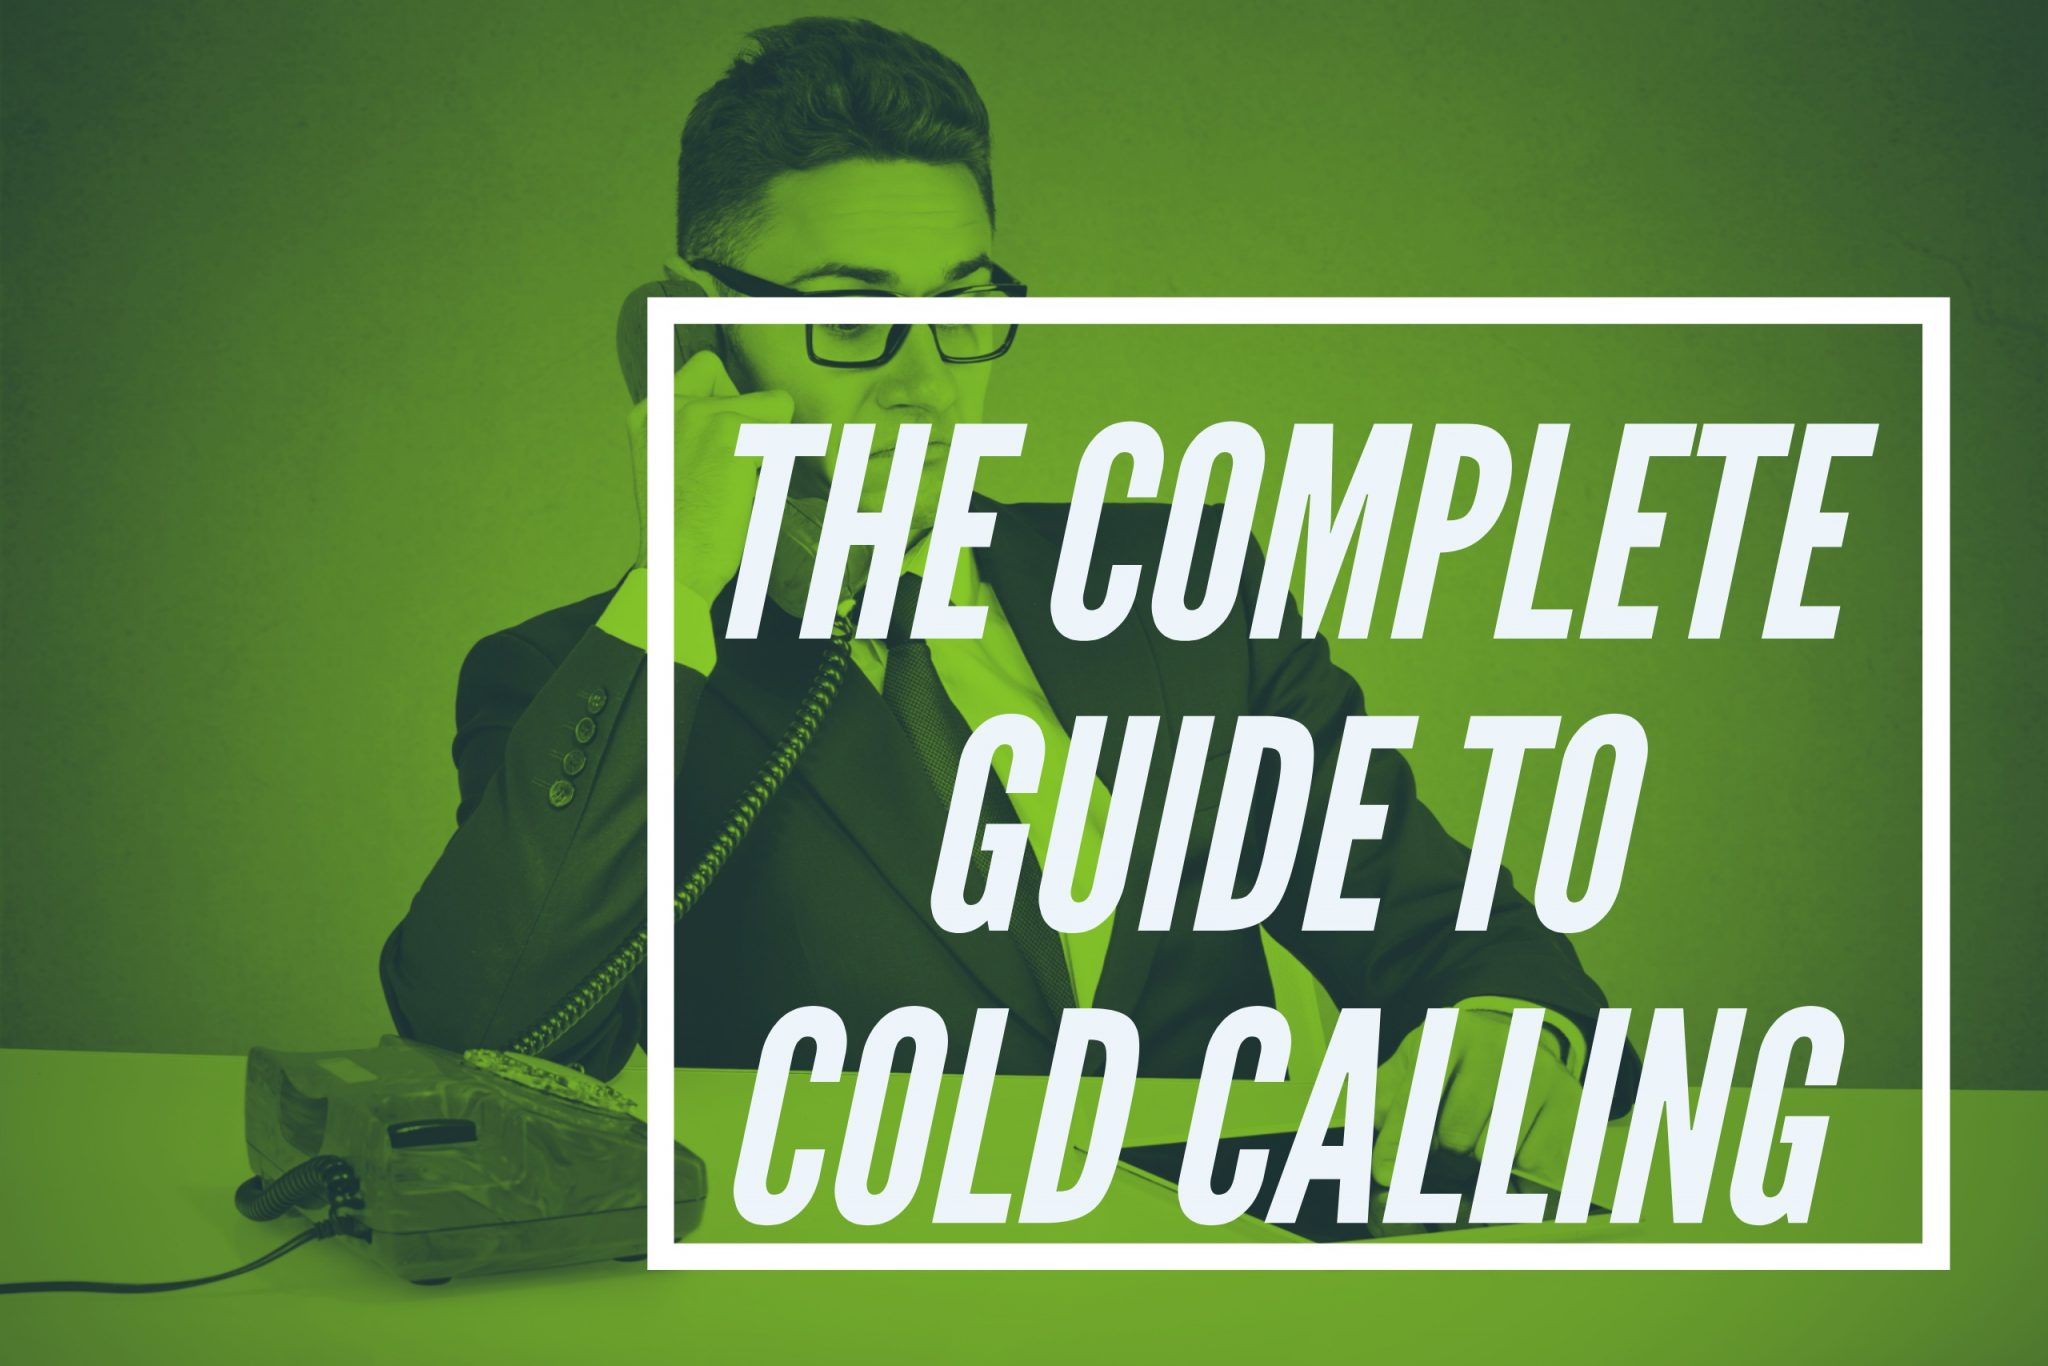 The Complete Guide On How To Cold Call In Real Estate REH Real Estate - Fresh commercial real estate listing presentation design